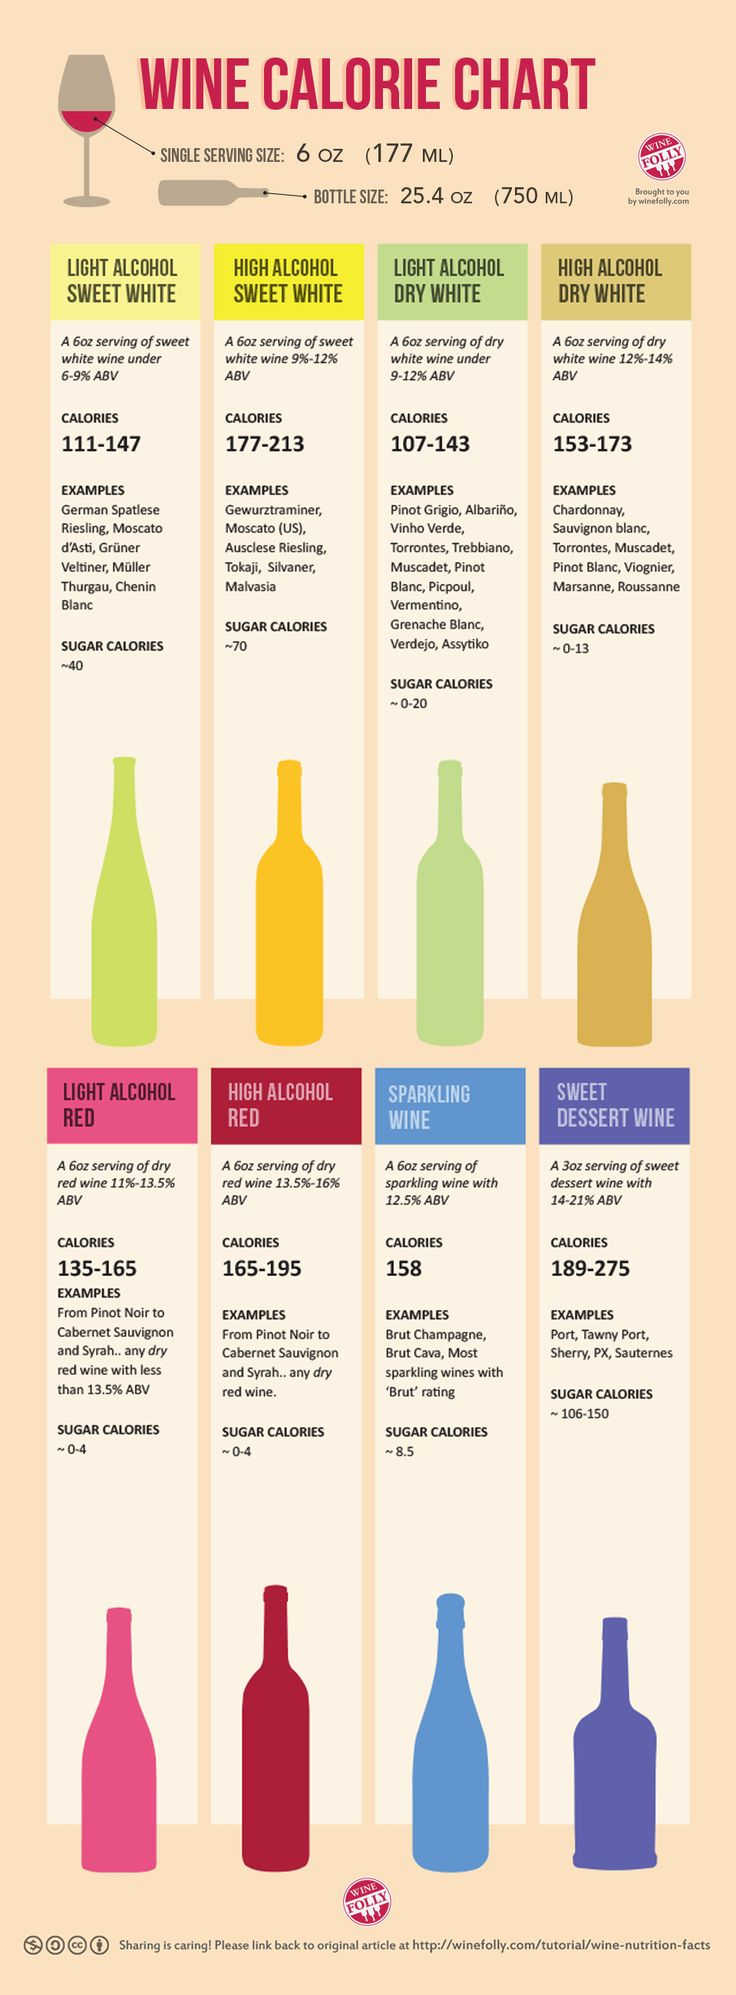 Check out this chart to see how many calories are in your glass of wine